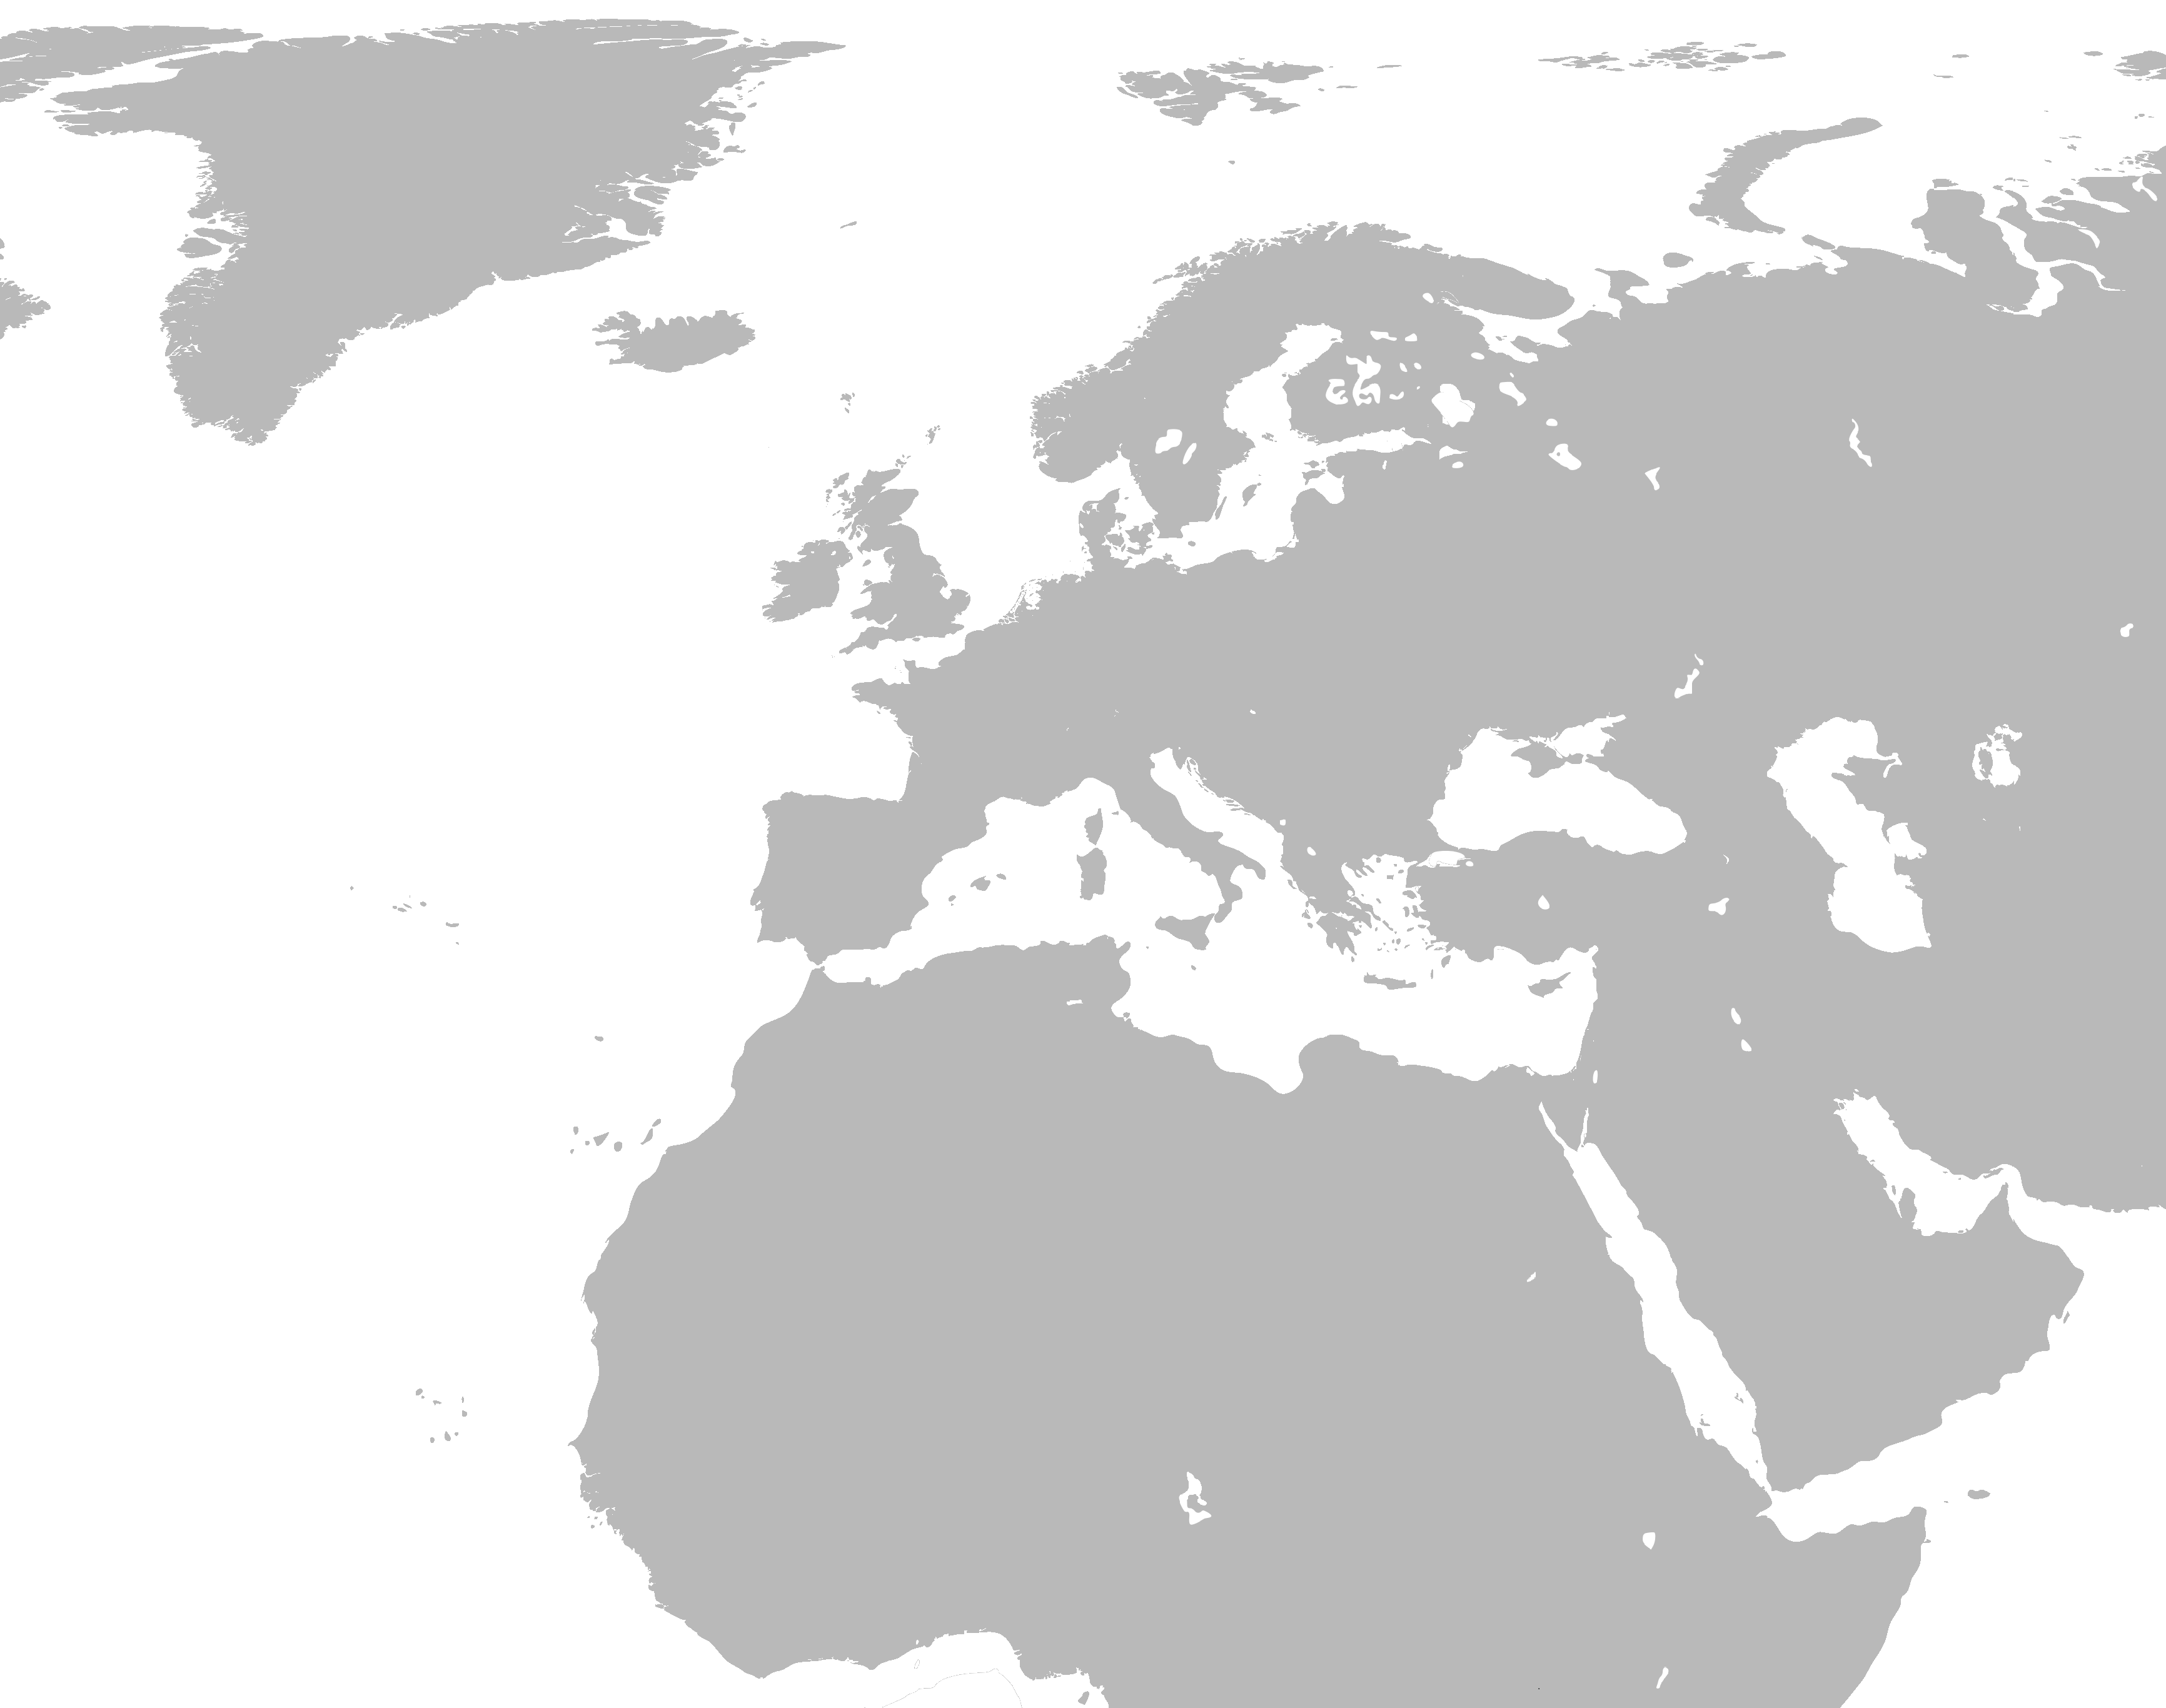 Image Blank Map Of Europepng TheFutureOfEuropes Wiki FANDOM - World map blank 2014